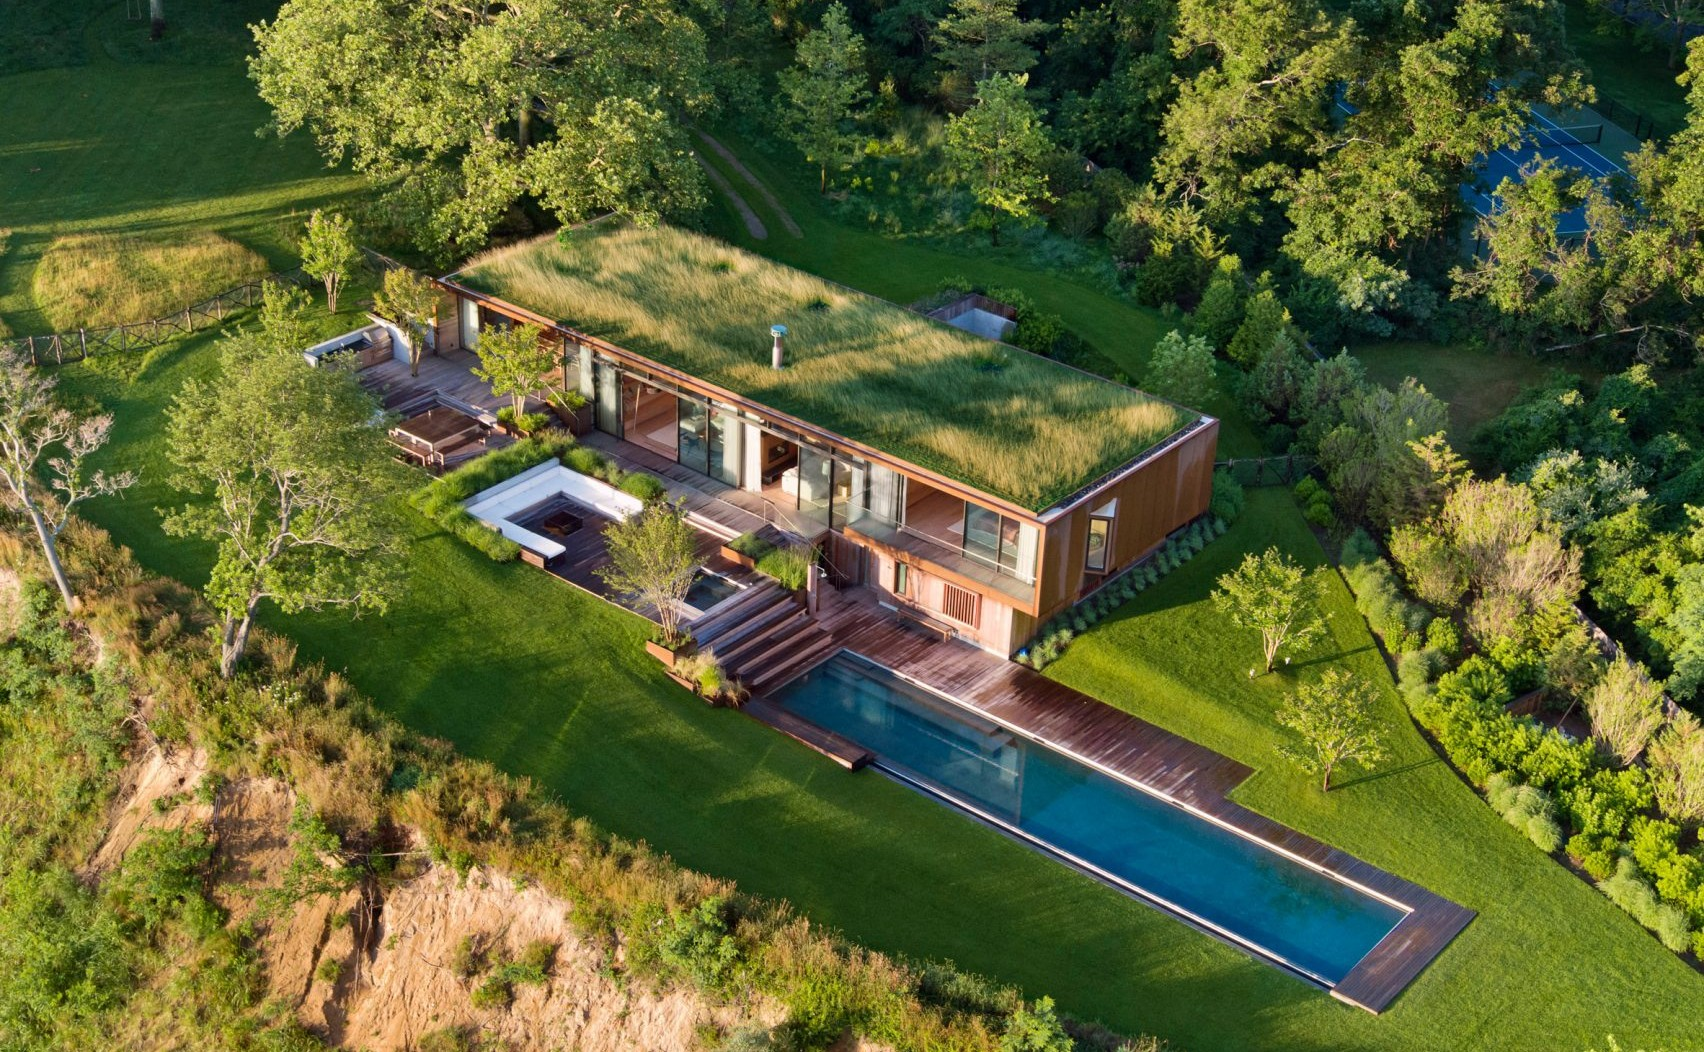 peconic-house-mapos-studio-hamptons-long-island-new-york_dezeen_2364_col_2-1704x1277